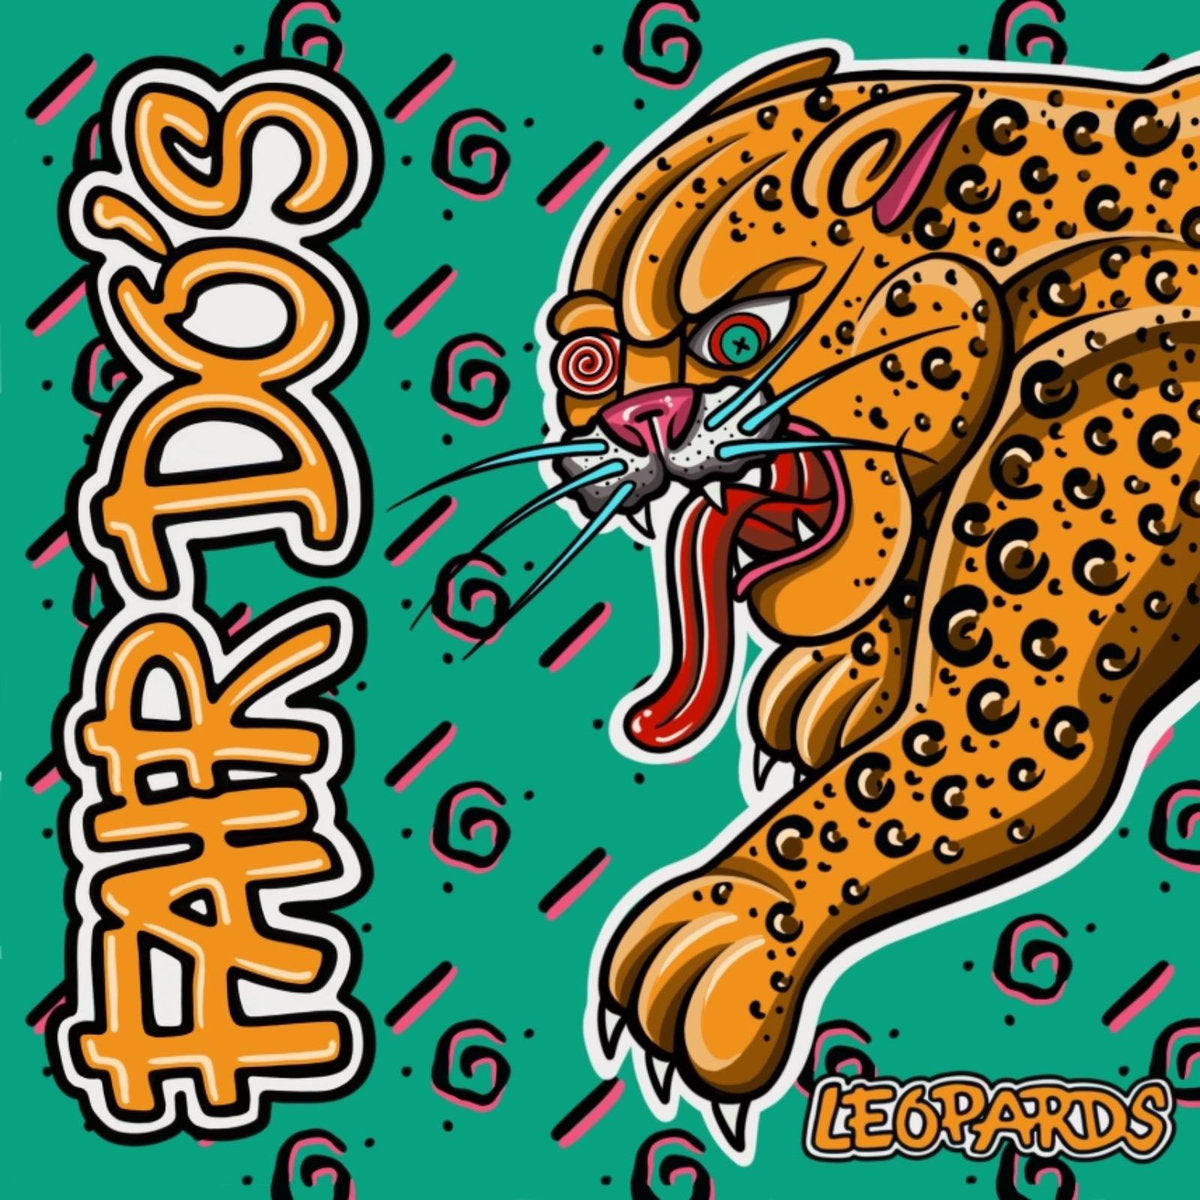 Fair Do's - Leopards LP - Vinyl